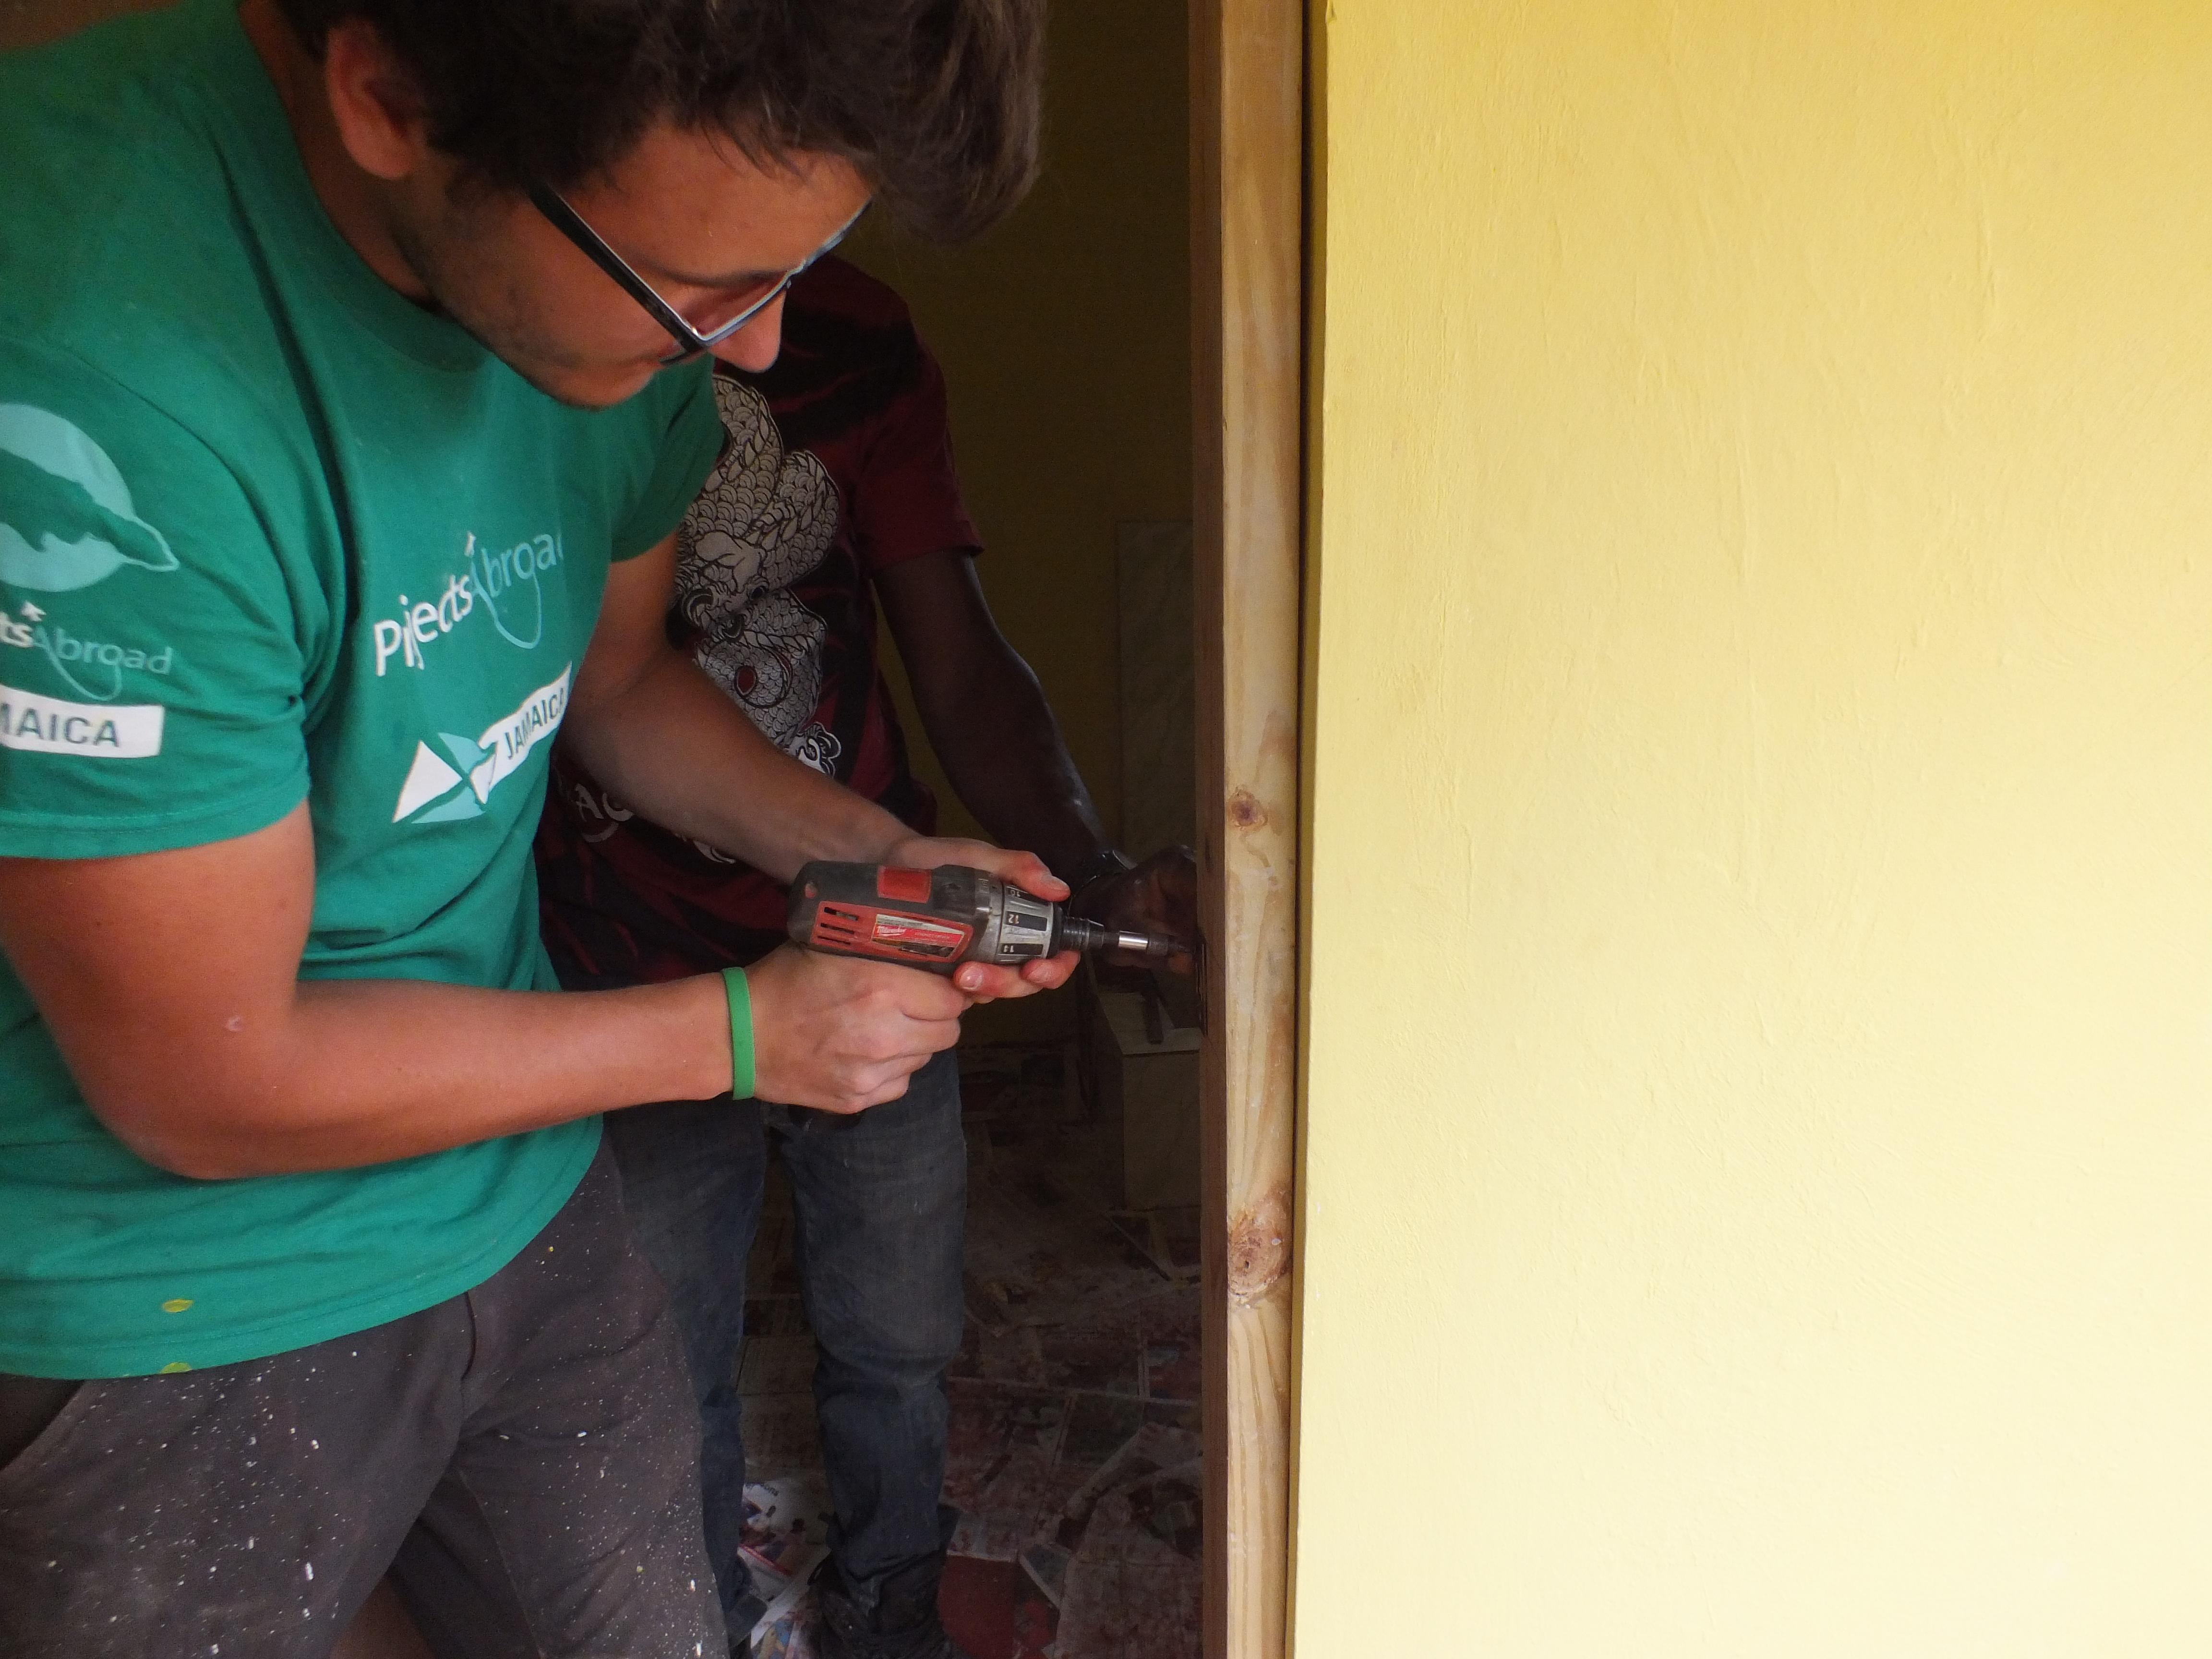 A volunteer helps with building a bathroom as part of construction volunteering in Jamaica for a group.